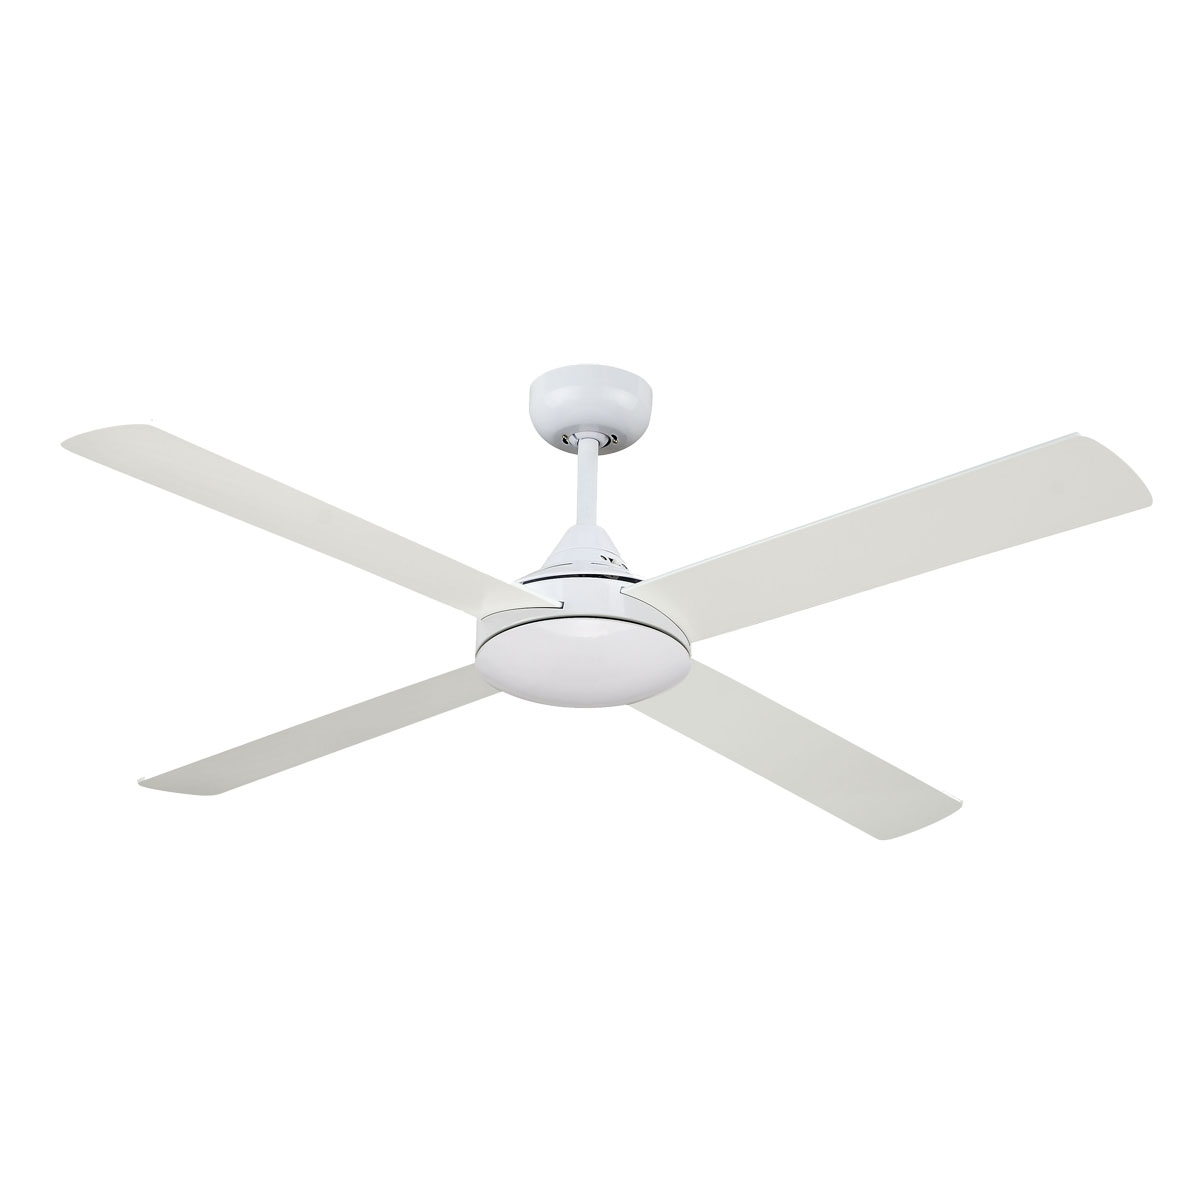 Revolve 48 Inch Ceiling Fan White